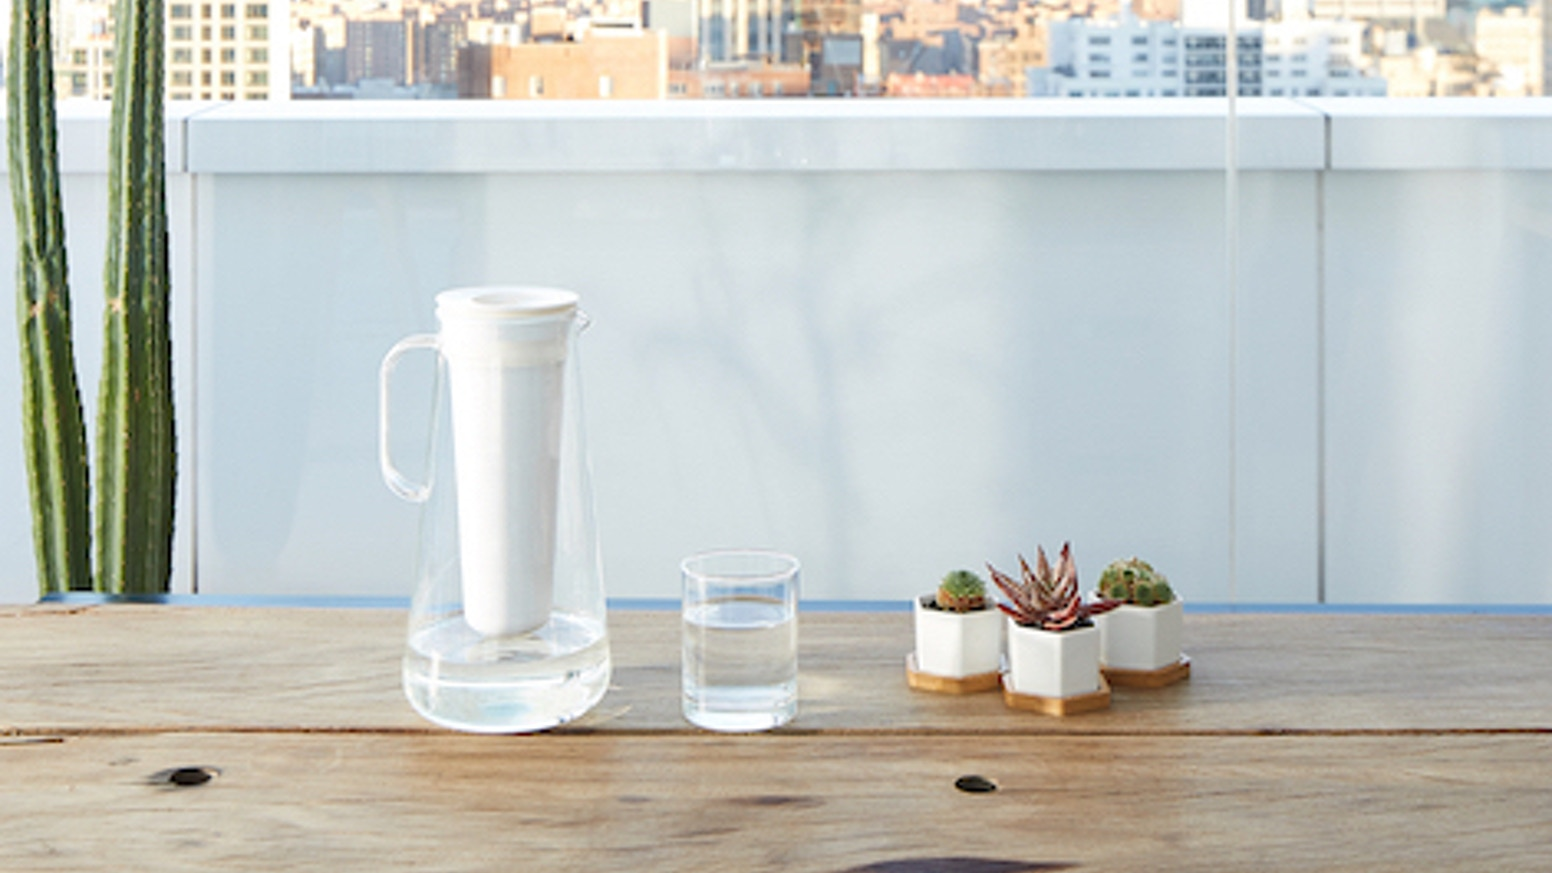 From the makers of LifeStraw, comes the LifeStraw Home: a sleek, glass water filter pitcher with powerful filtration technology.